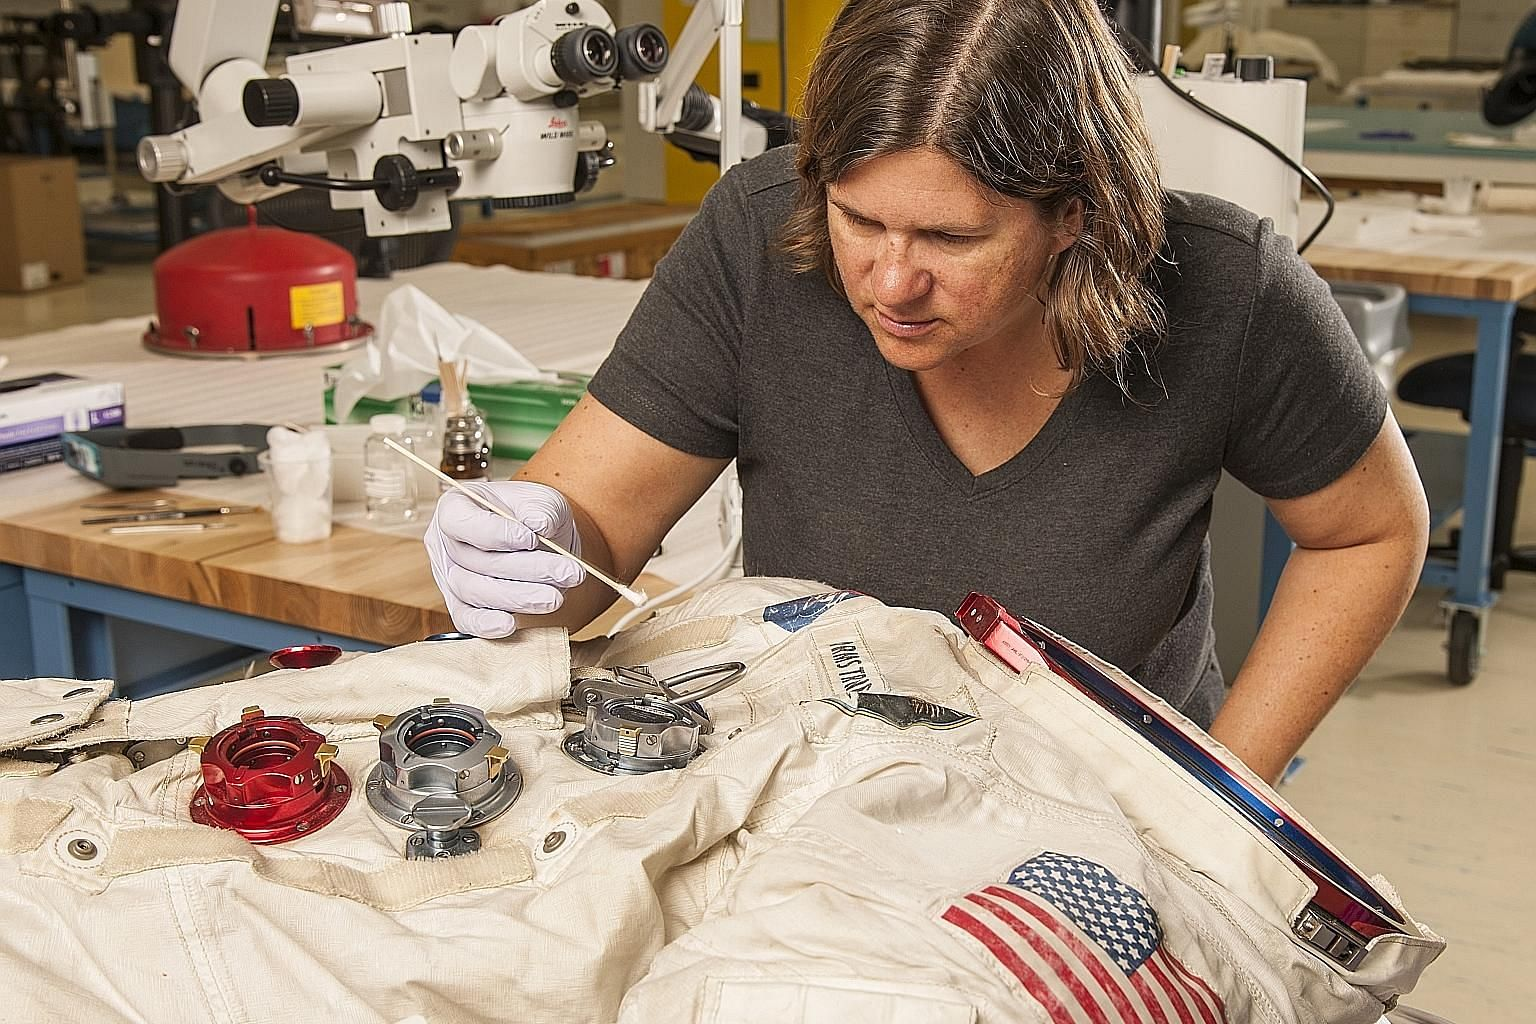 Astronaut Neil Armstrong's spacesuit (above) being worked on in a conservation laboratory; and Dorothy's red slippers from The Wizard Of Oz.